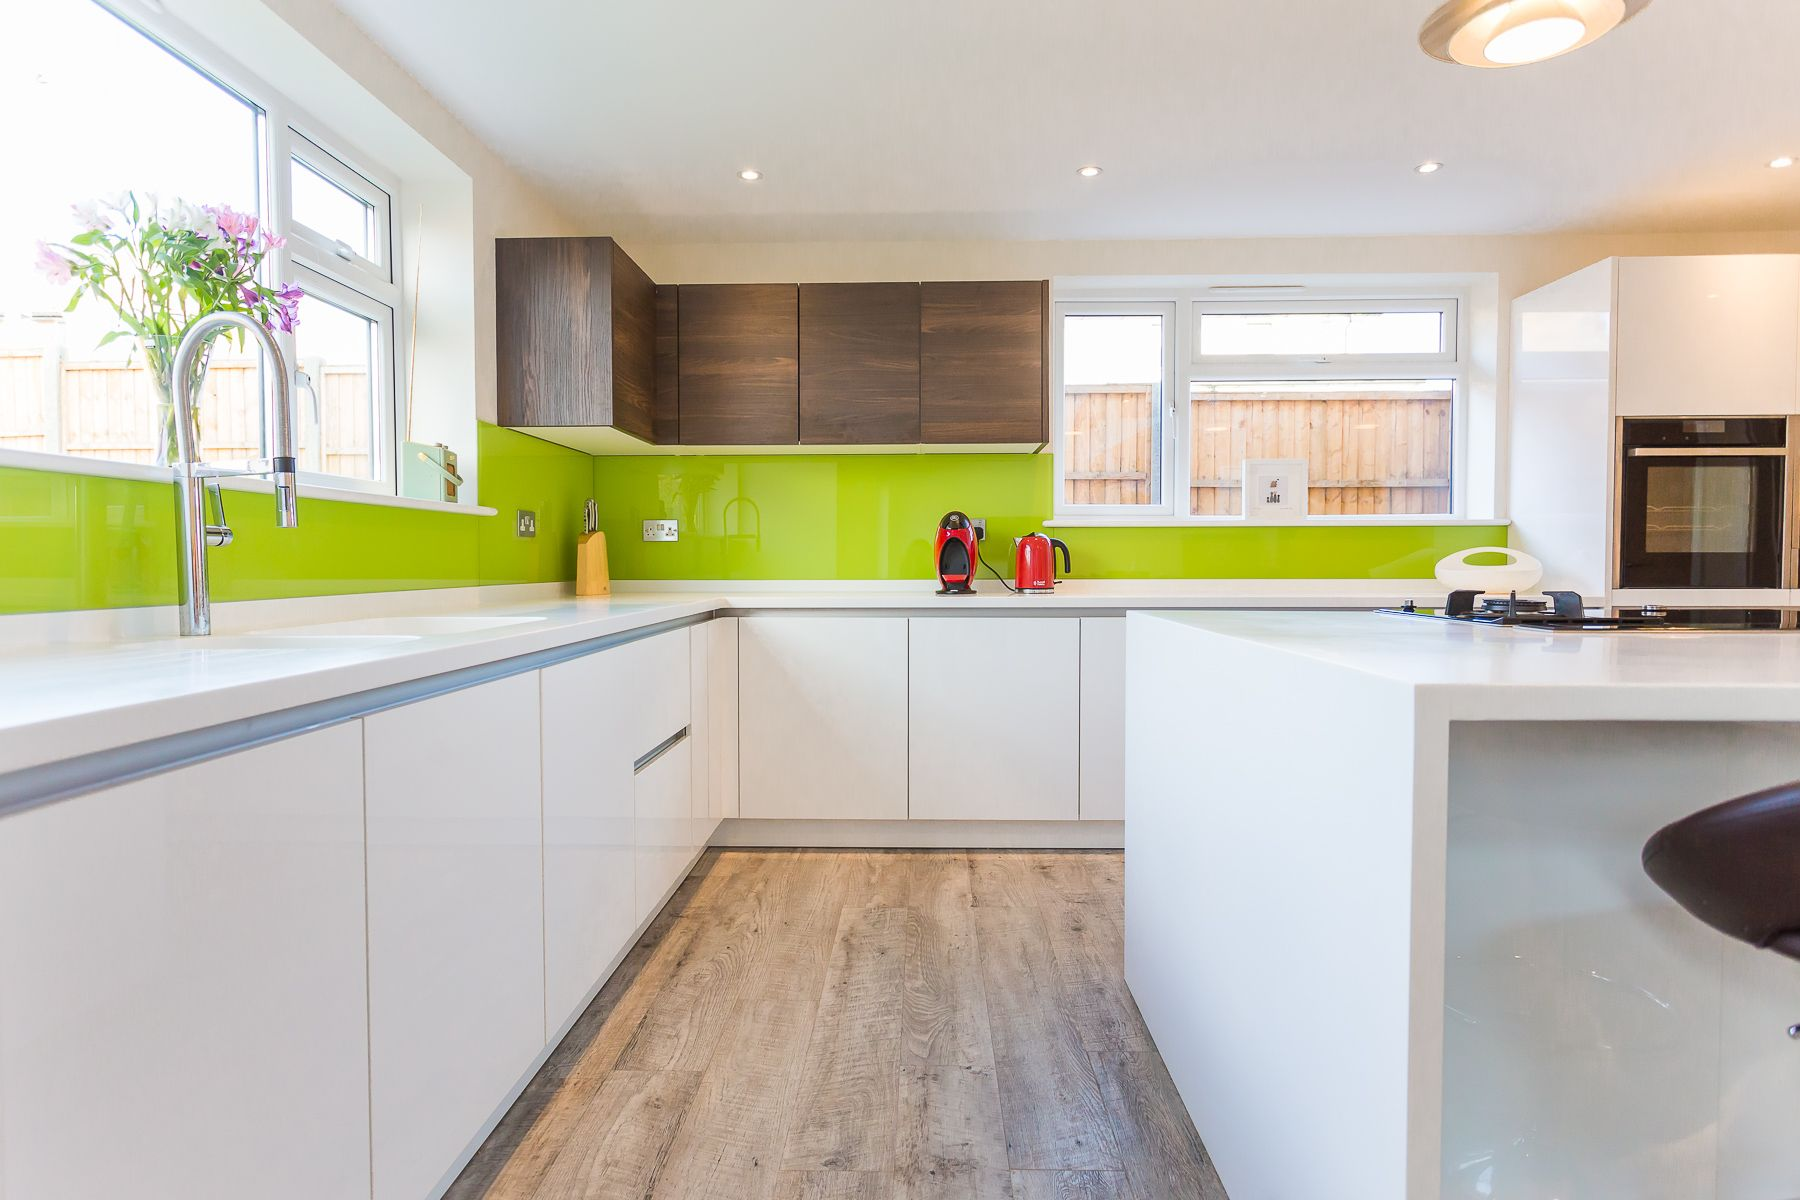 Our beautiful White Nolte Lux handleless kitchen which is